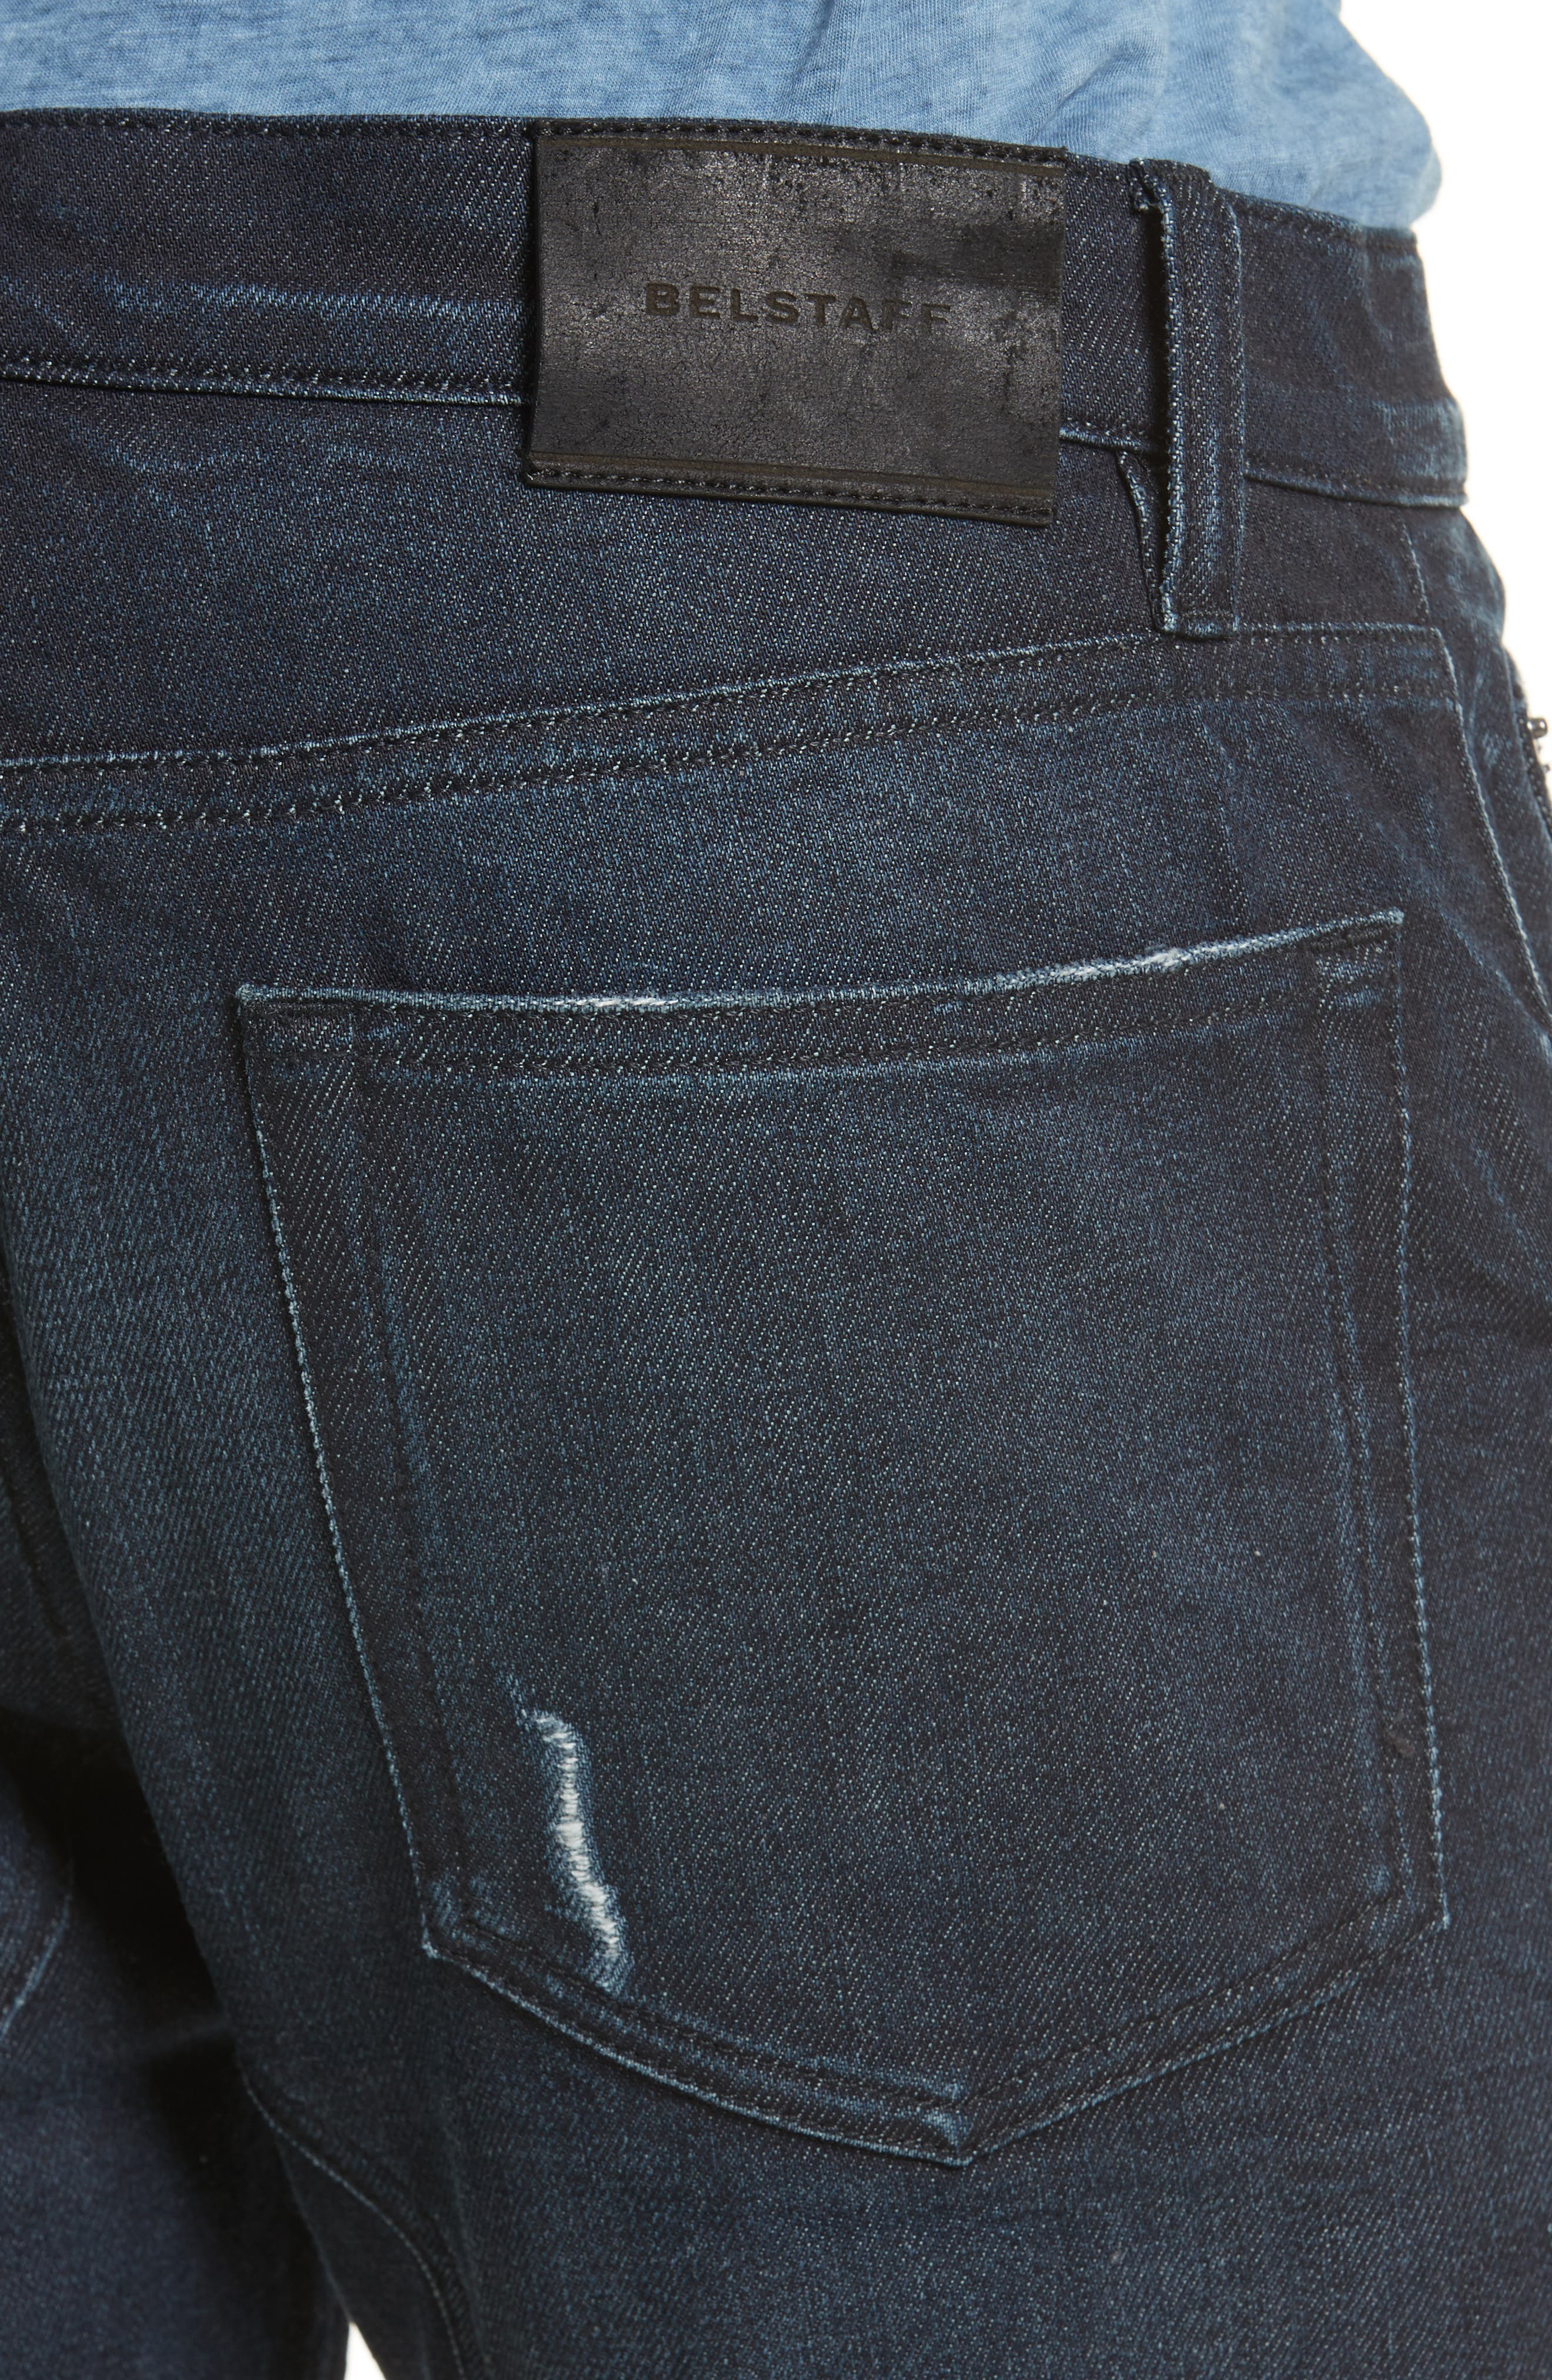 Eastham Washed Moto Jeans,                             Alternate thumbnail 5, color,